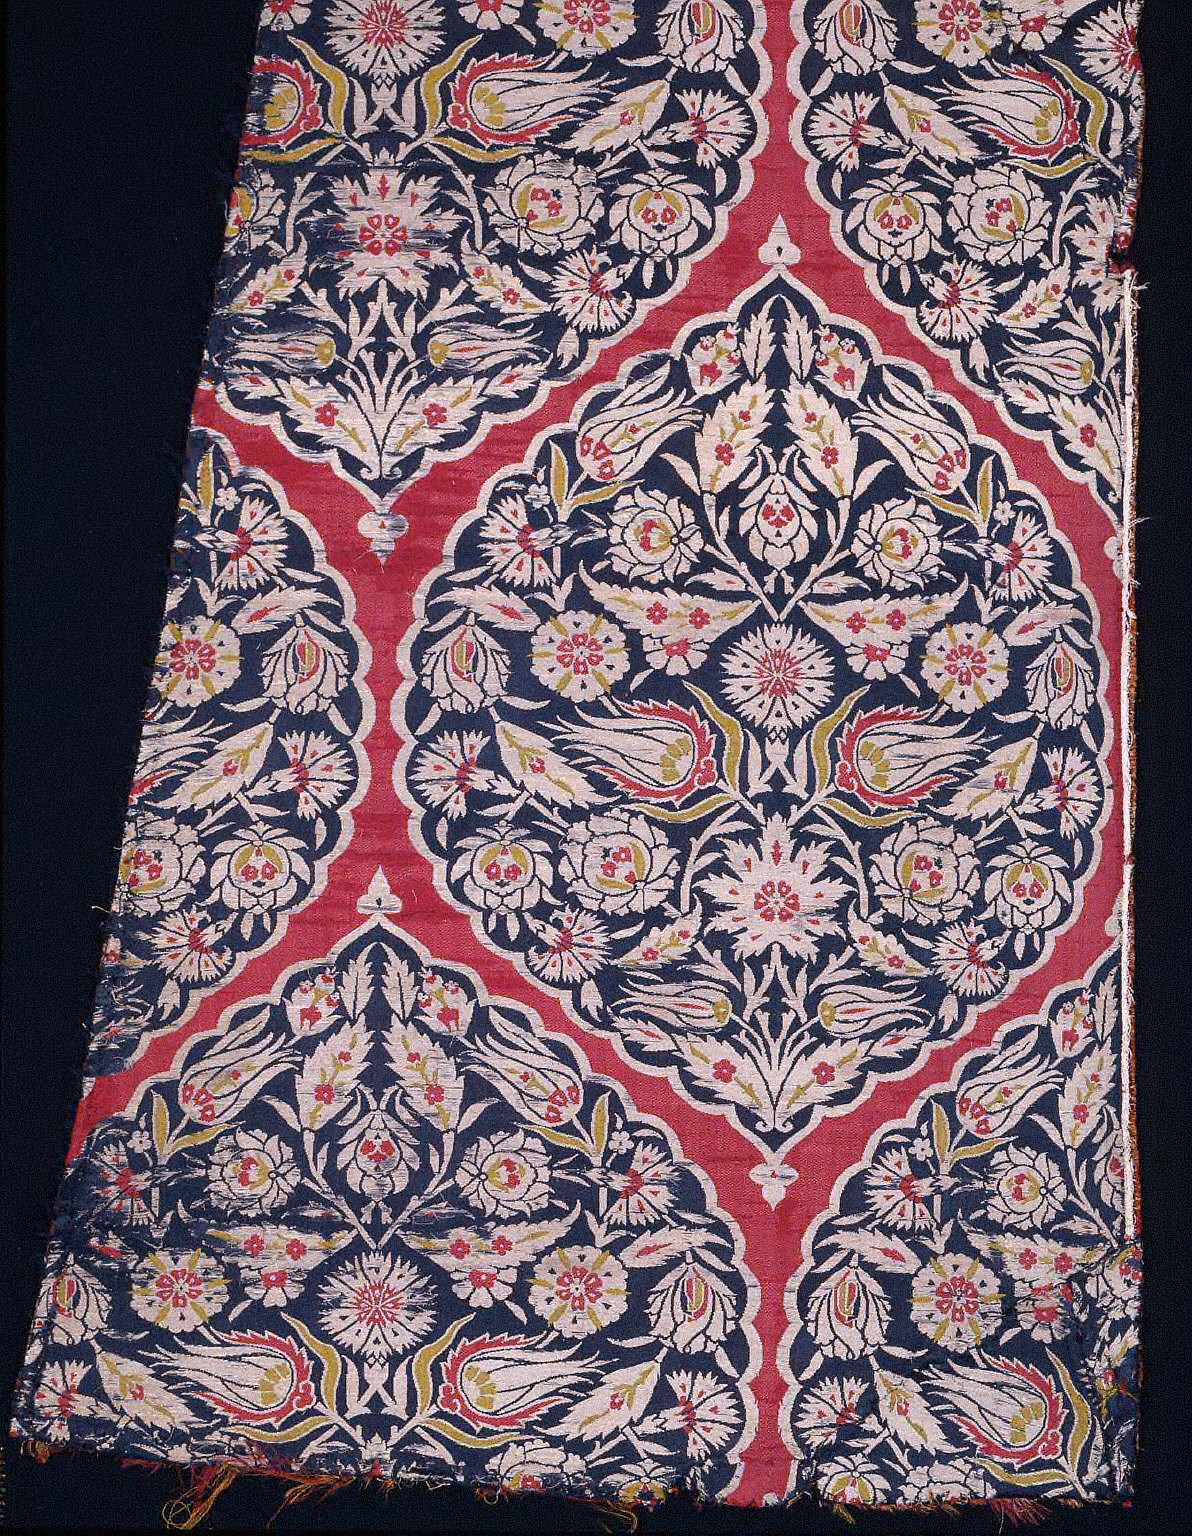 Textile fragment from a garment